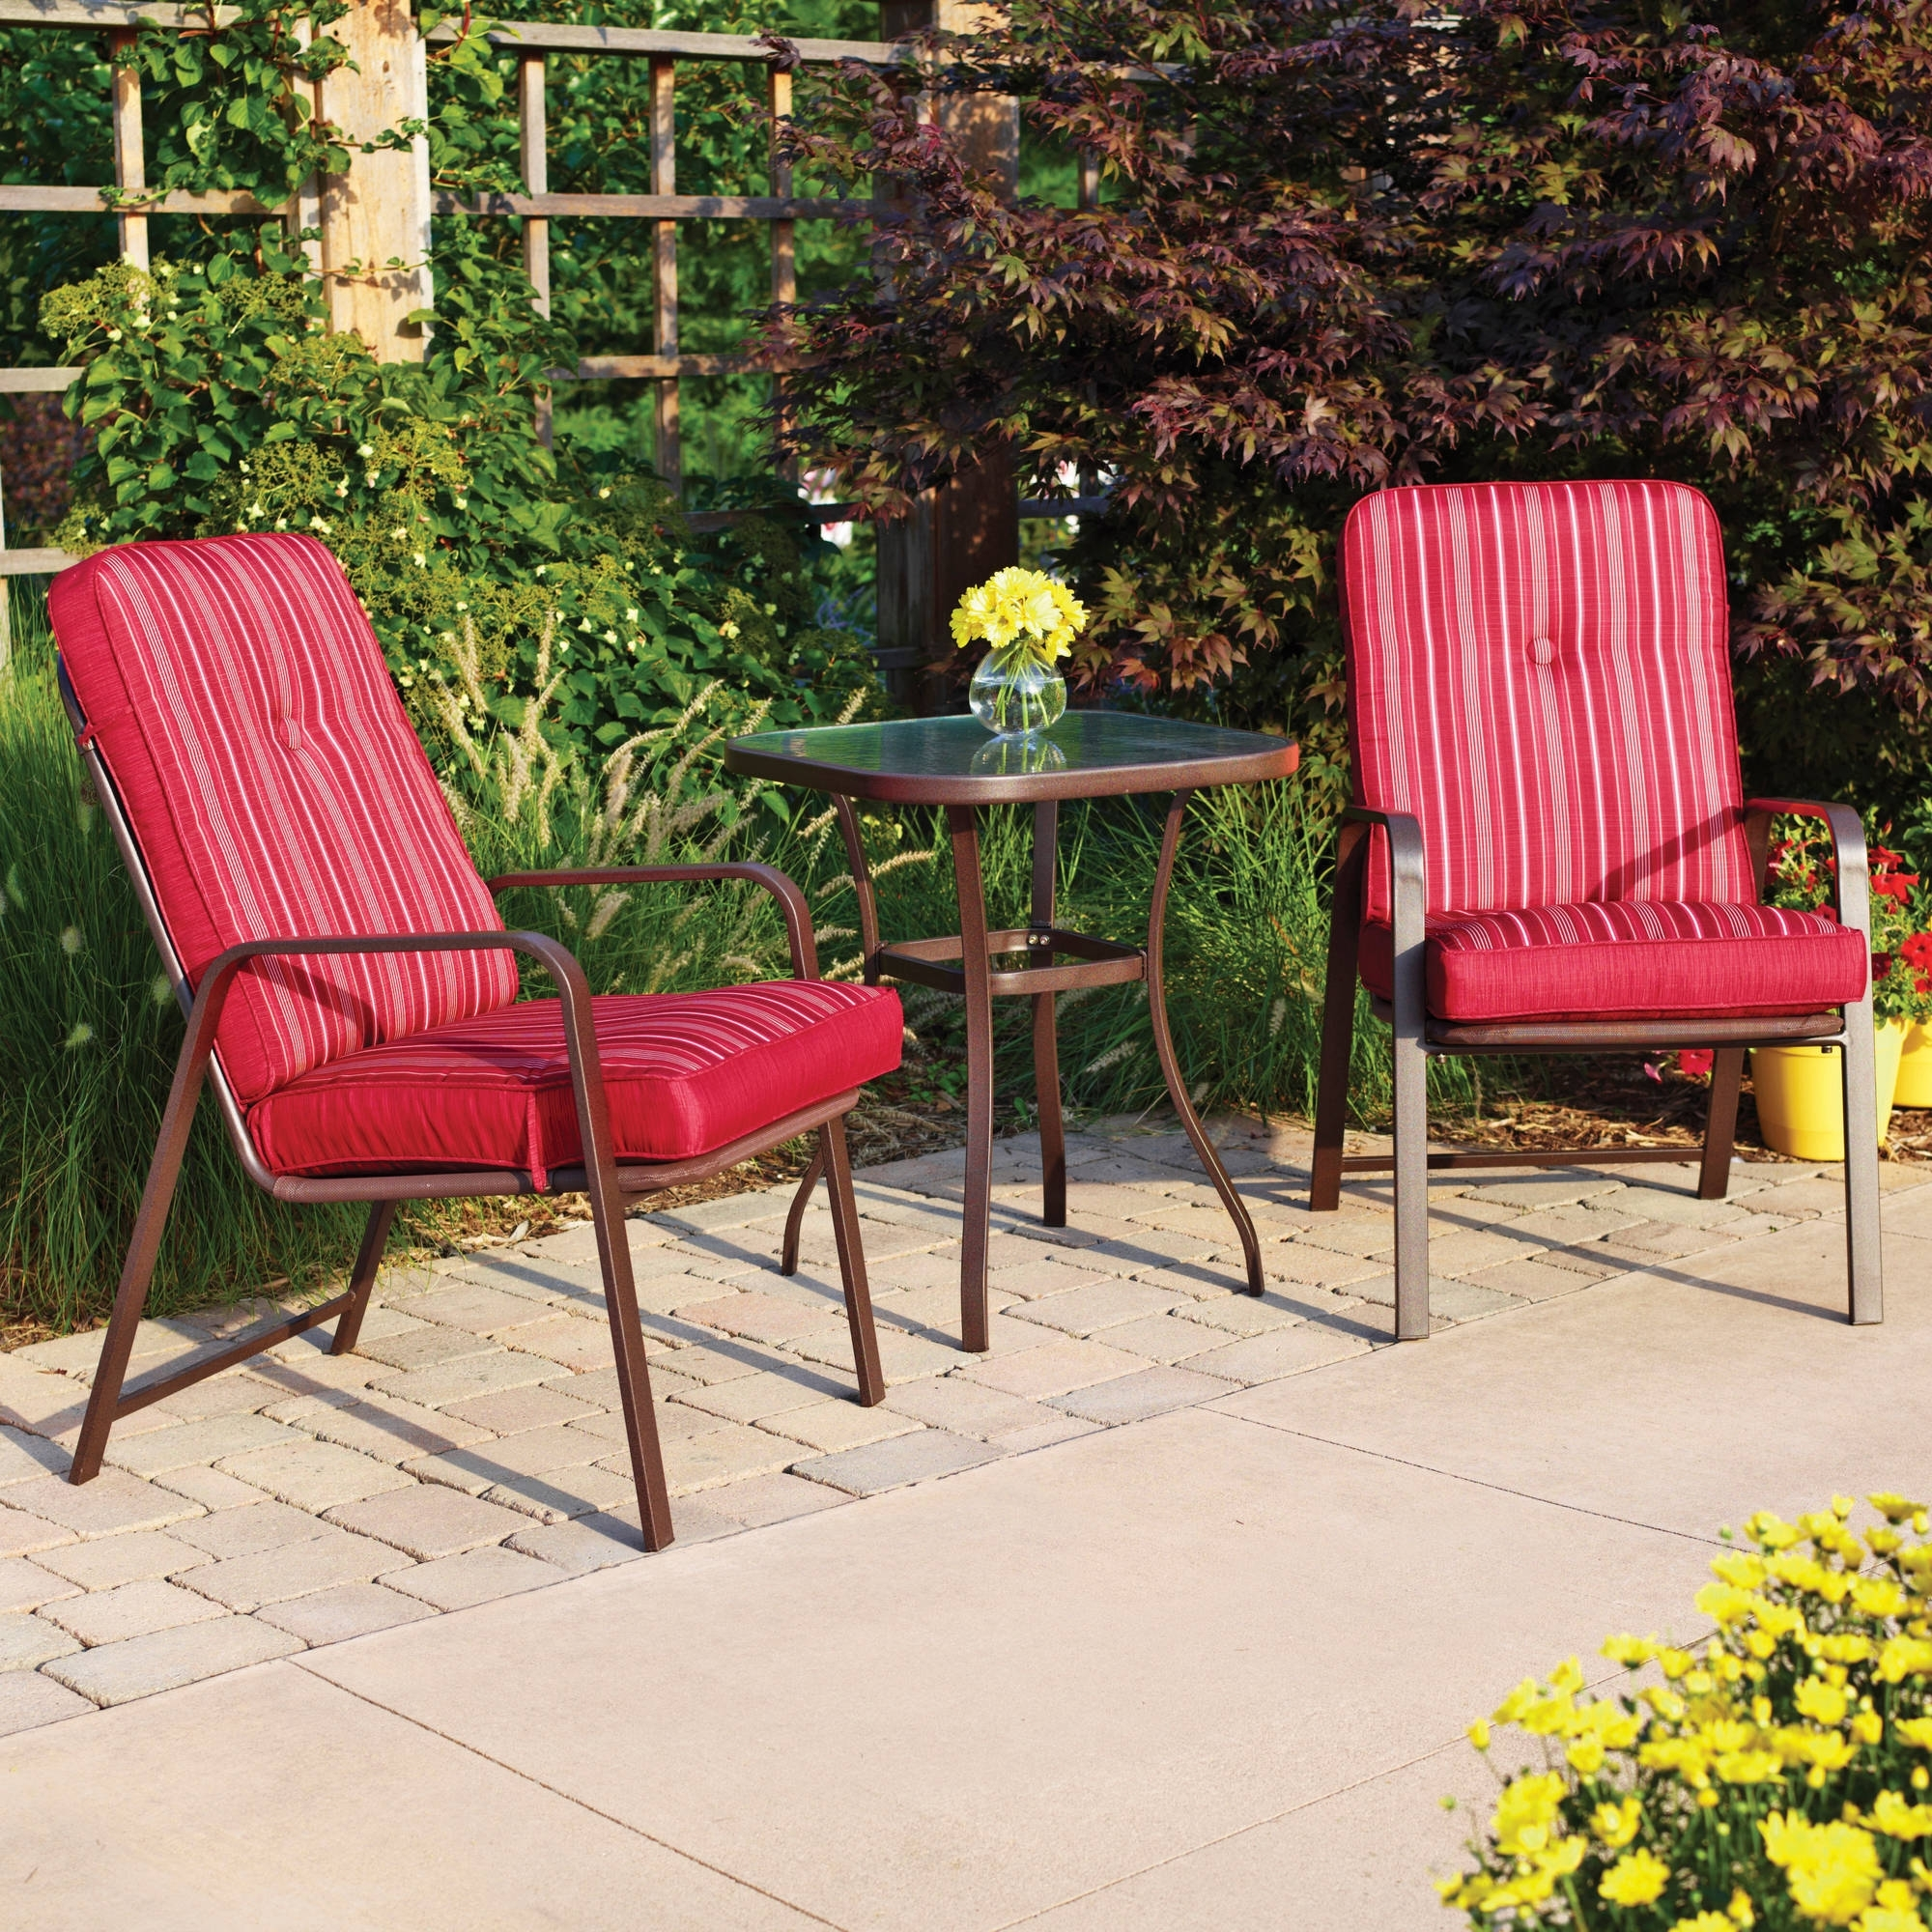 Image of: Mainstays Lawson Ridge 3 Piece Outdoor Bistro Set Seats 2 Throughout Red Outdoor Seat Cushions Red Outdoor Seat Cushions Set For Patio